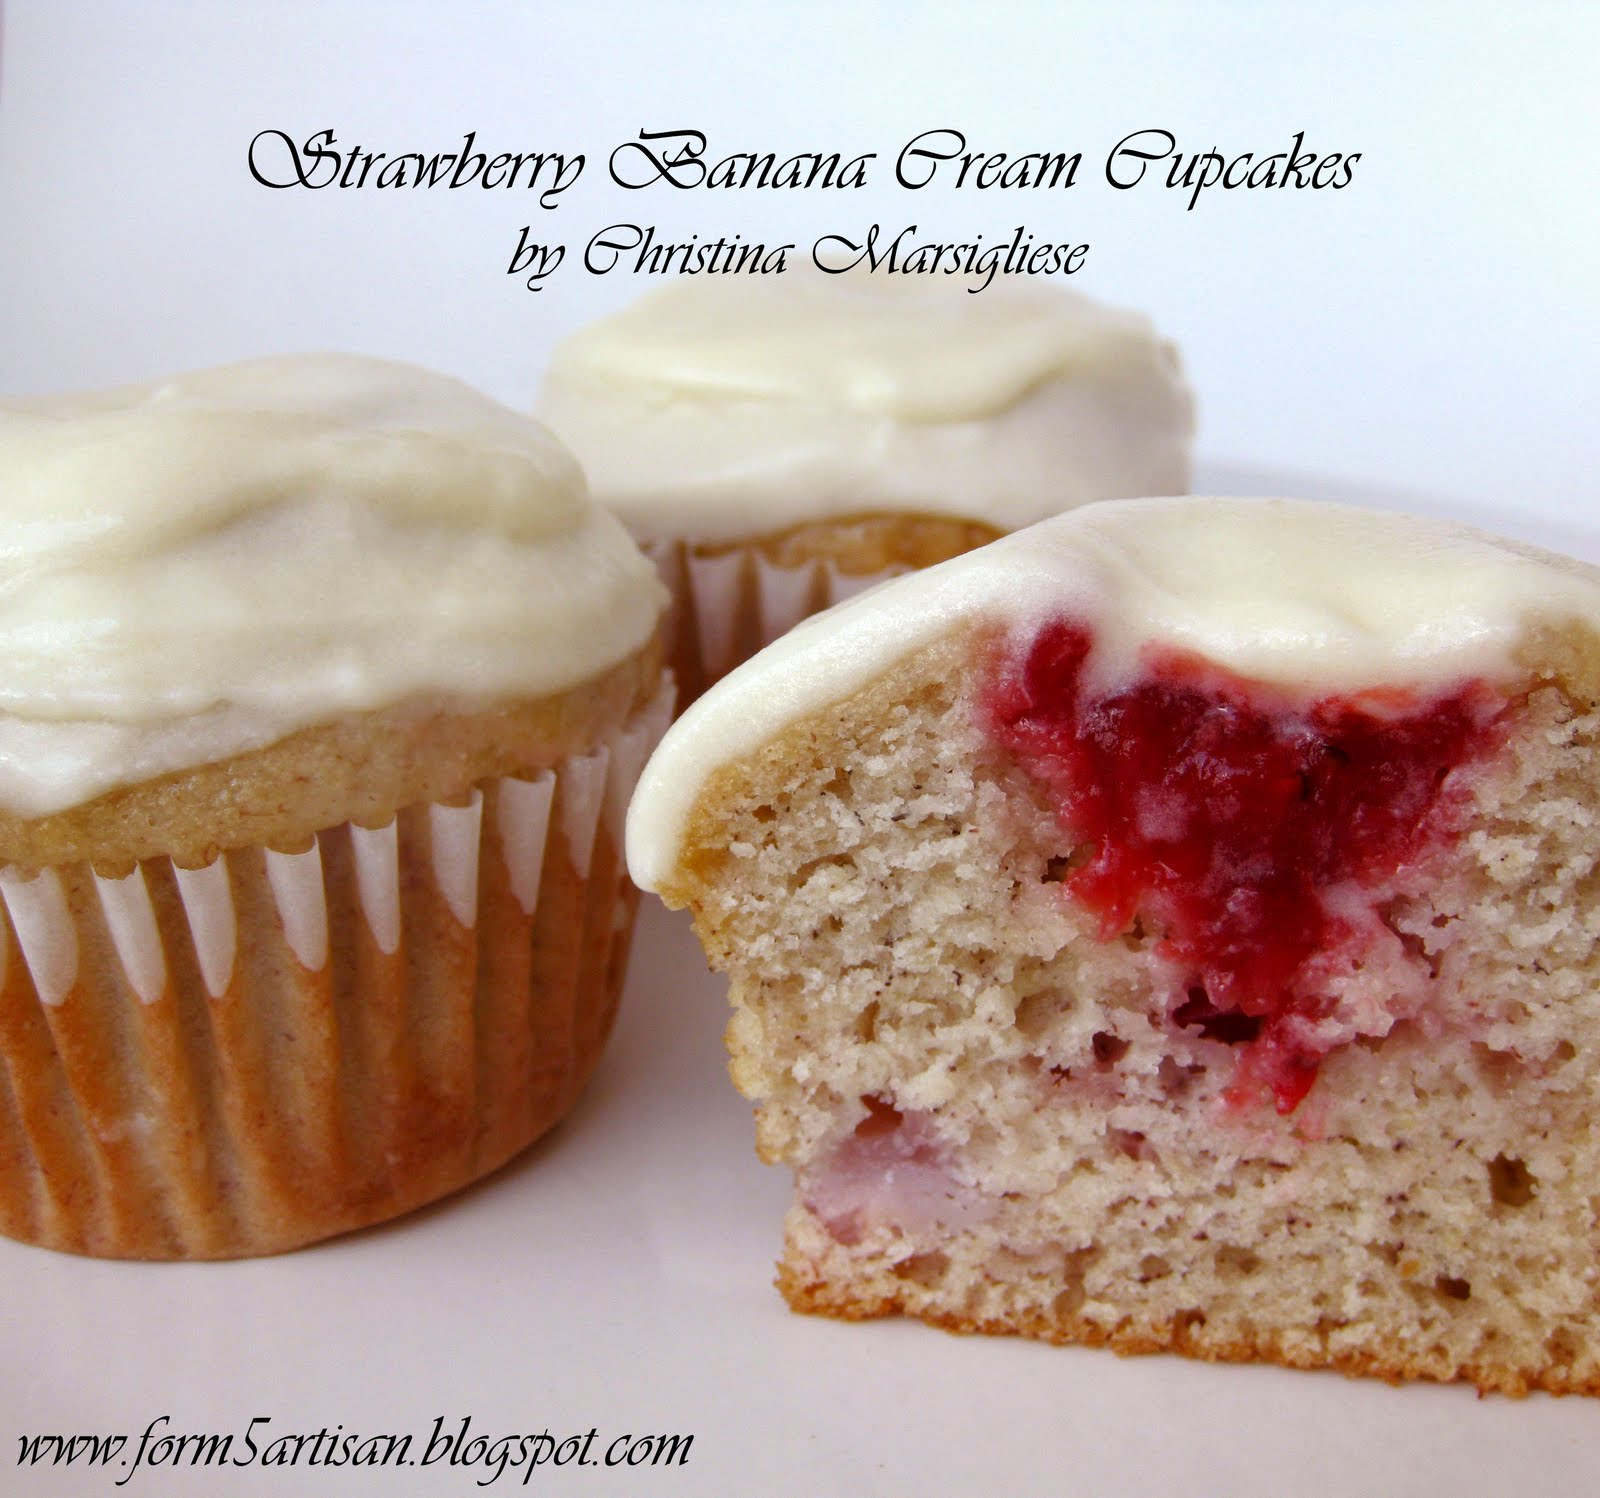 Scientifically Sweet: Strawberry Banana Cream Cupcakes